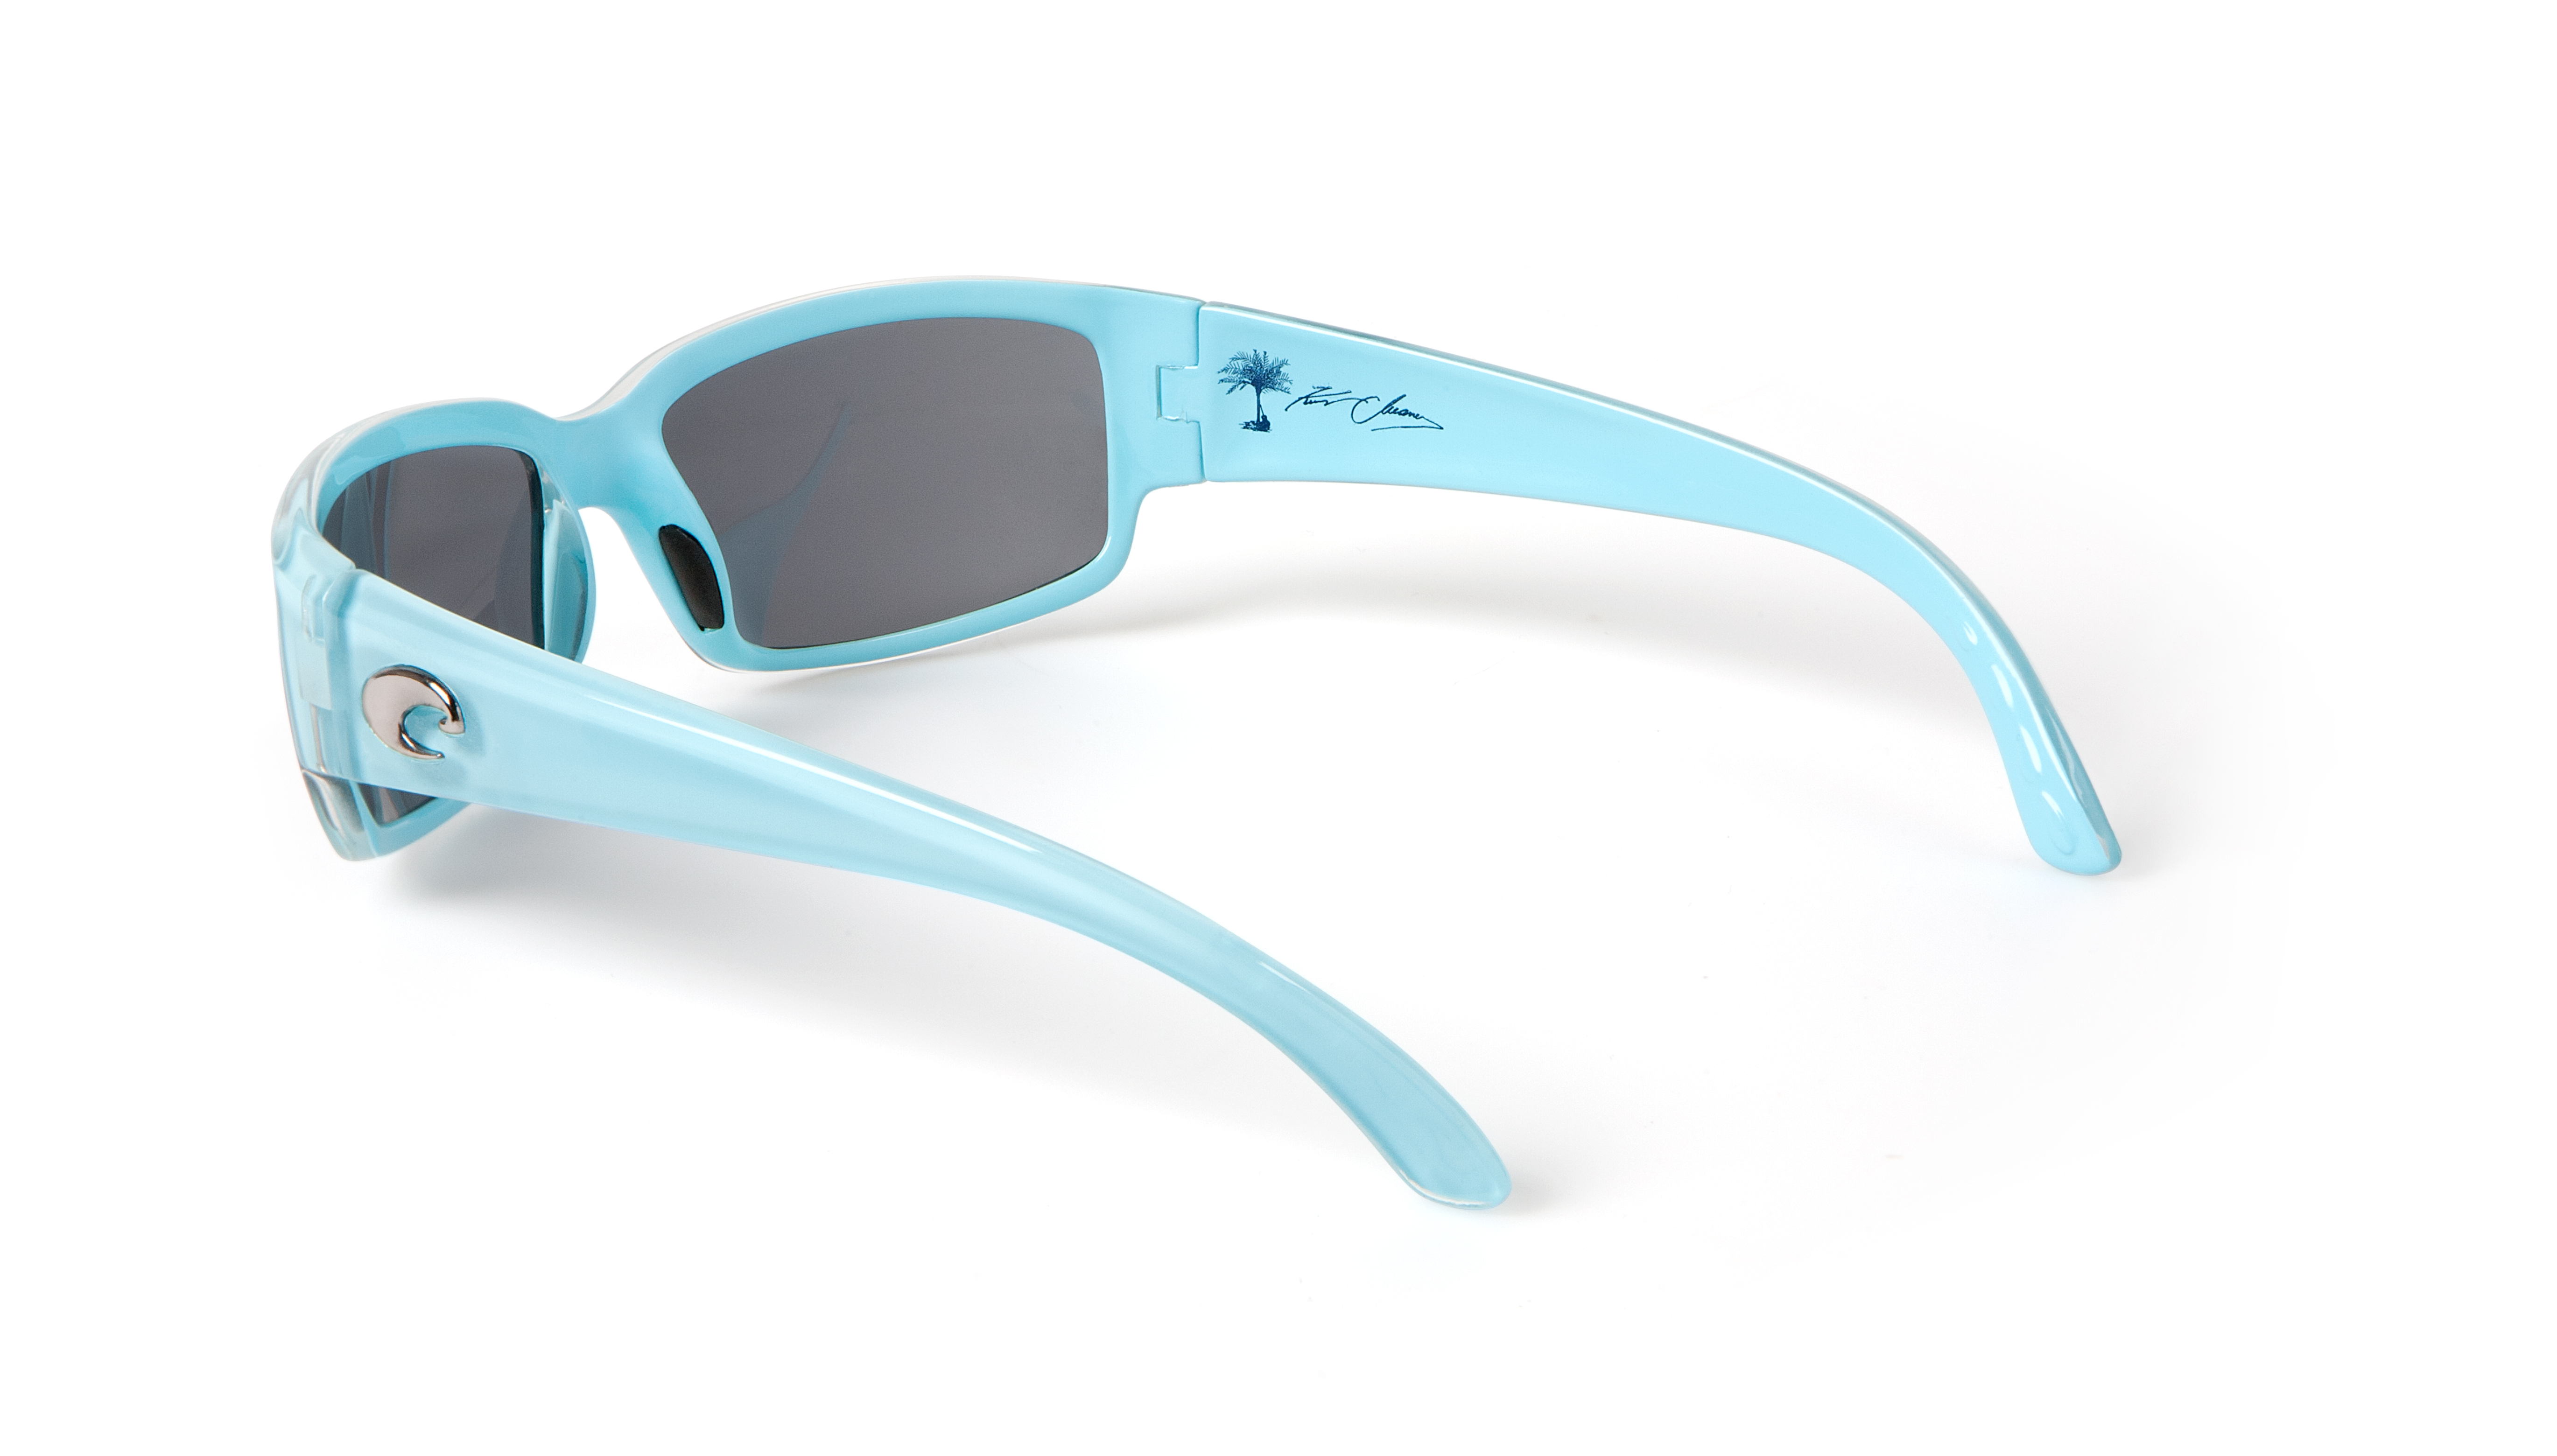 Sales of the new Kenny Chesney Limited Edition Costa Sunglasses will again benefit the Coastal Conservation Association. The Caballito style in blue with gray 580P lenses shown here.